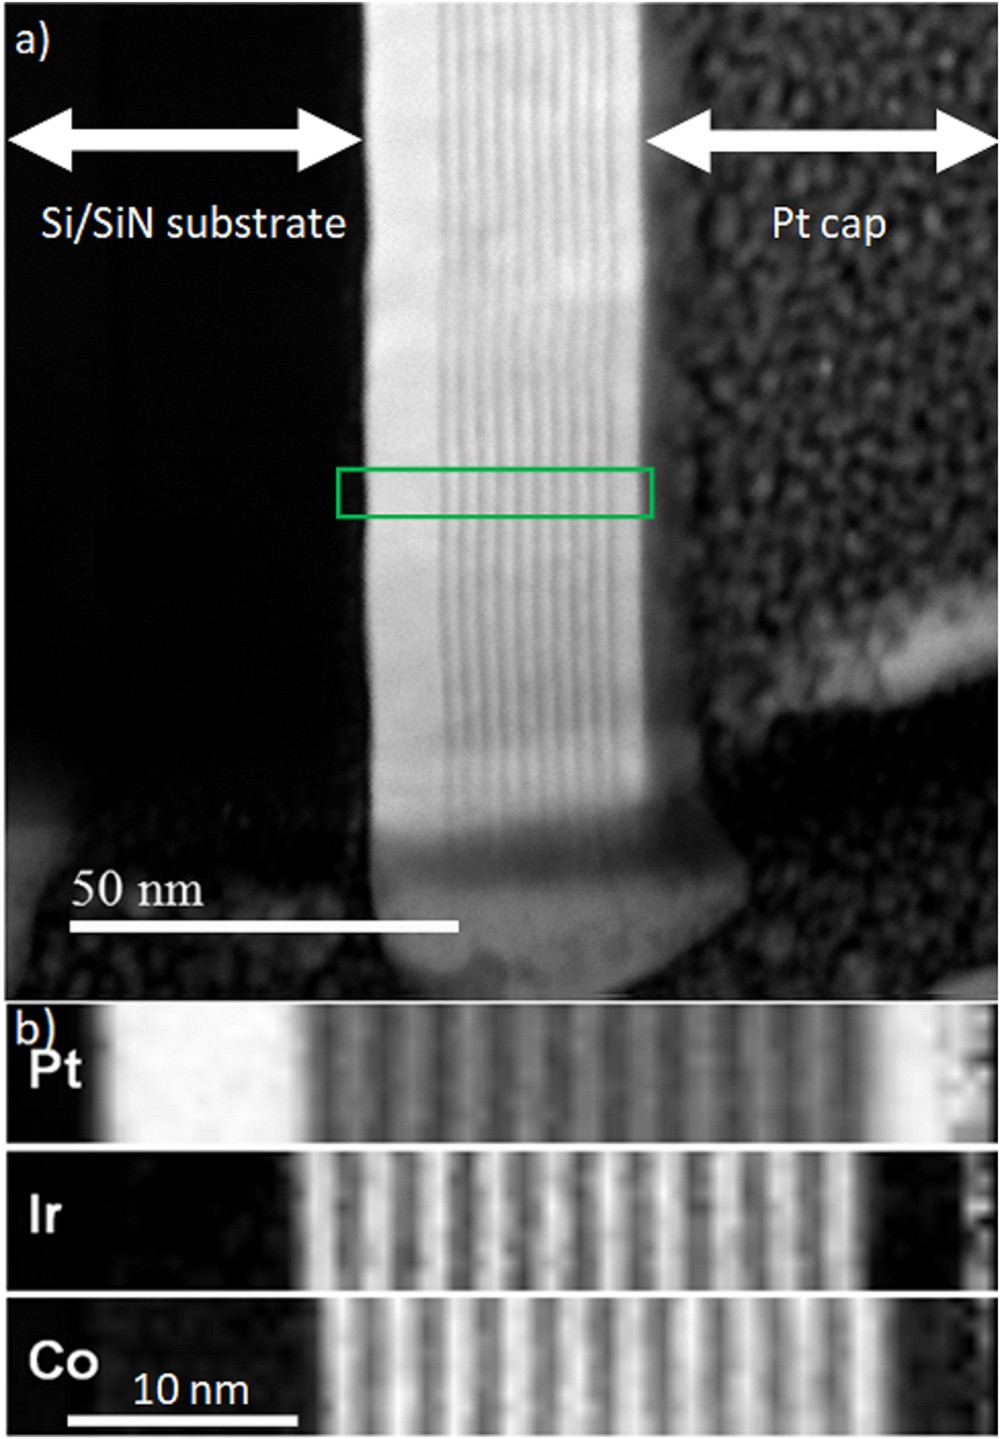 A Transmission Electron Microscope Study Of Nel Skyrmion Magnetic Textures In Multilayer Thin Film Systems With Large Interfacial Chiral Interaction